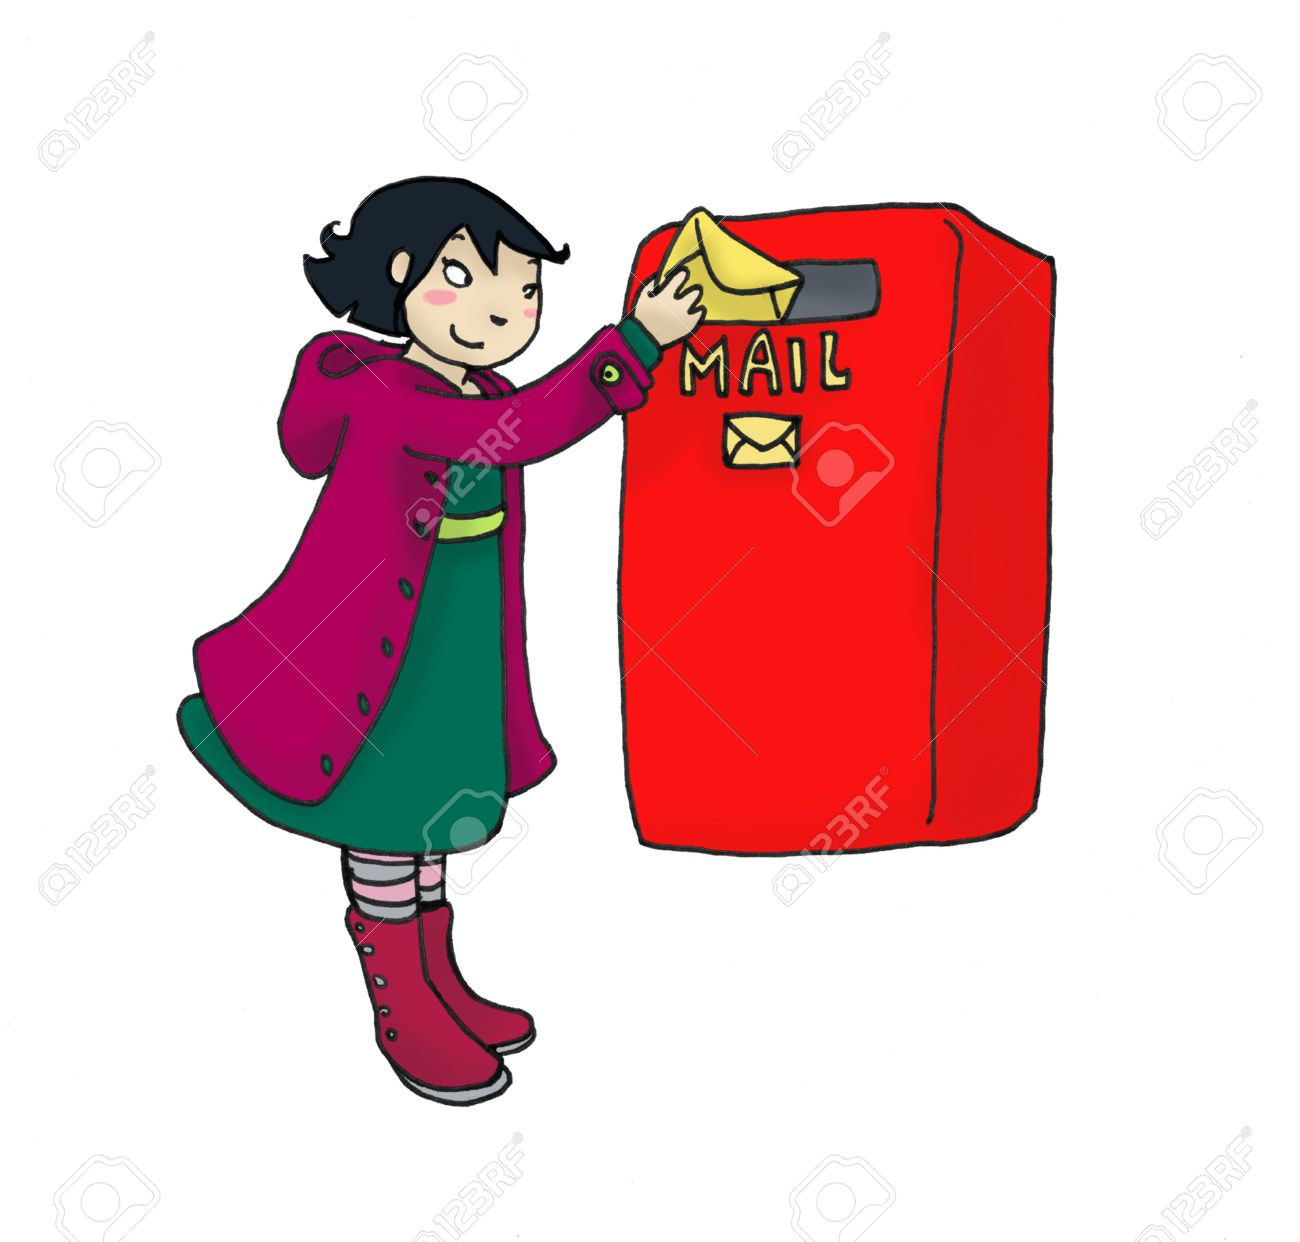 Posting A Letter Clipart.